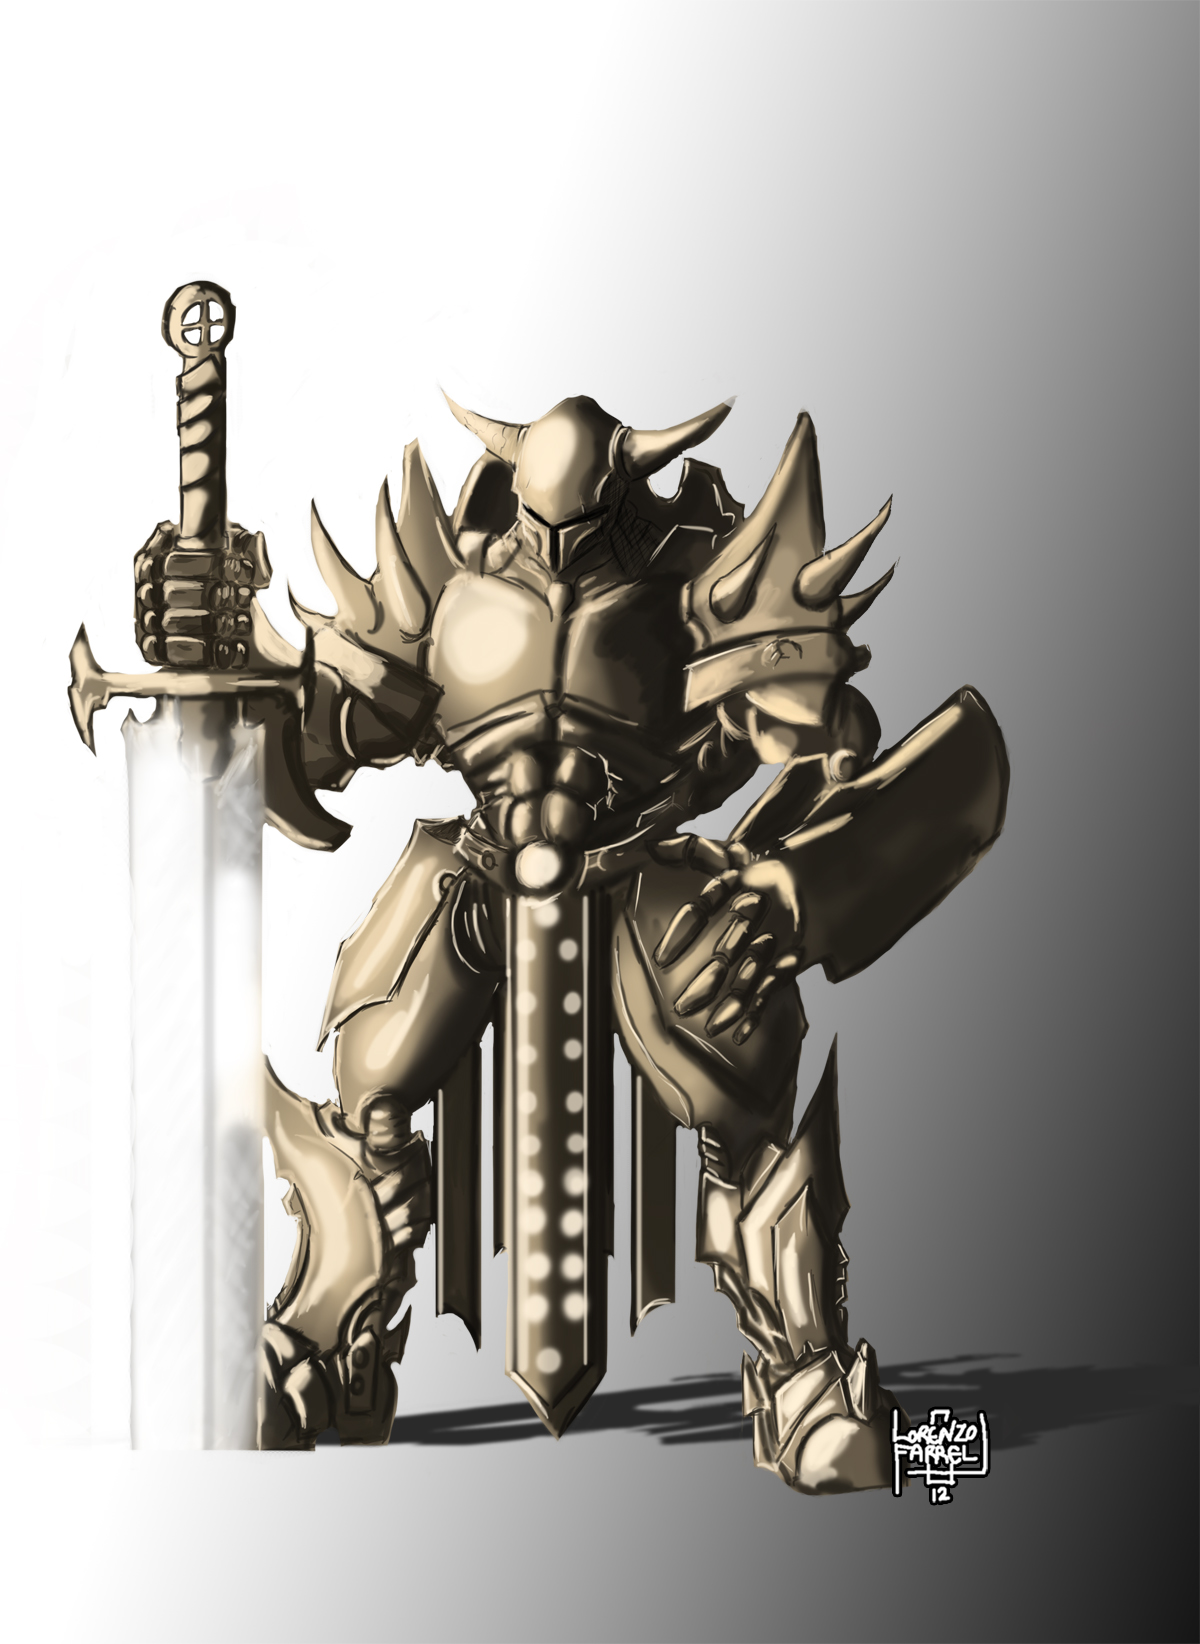 New character Knight